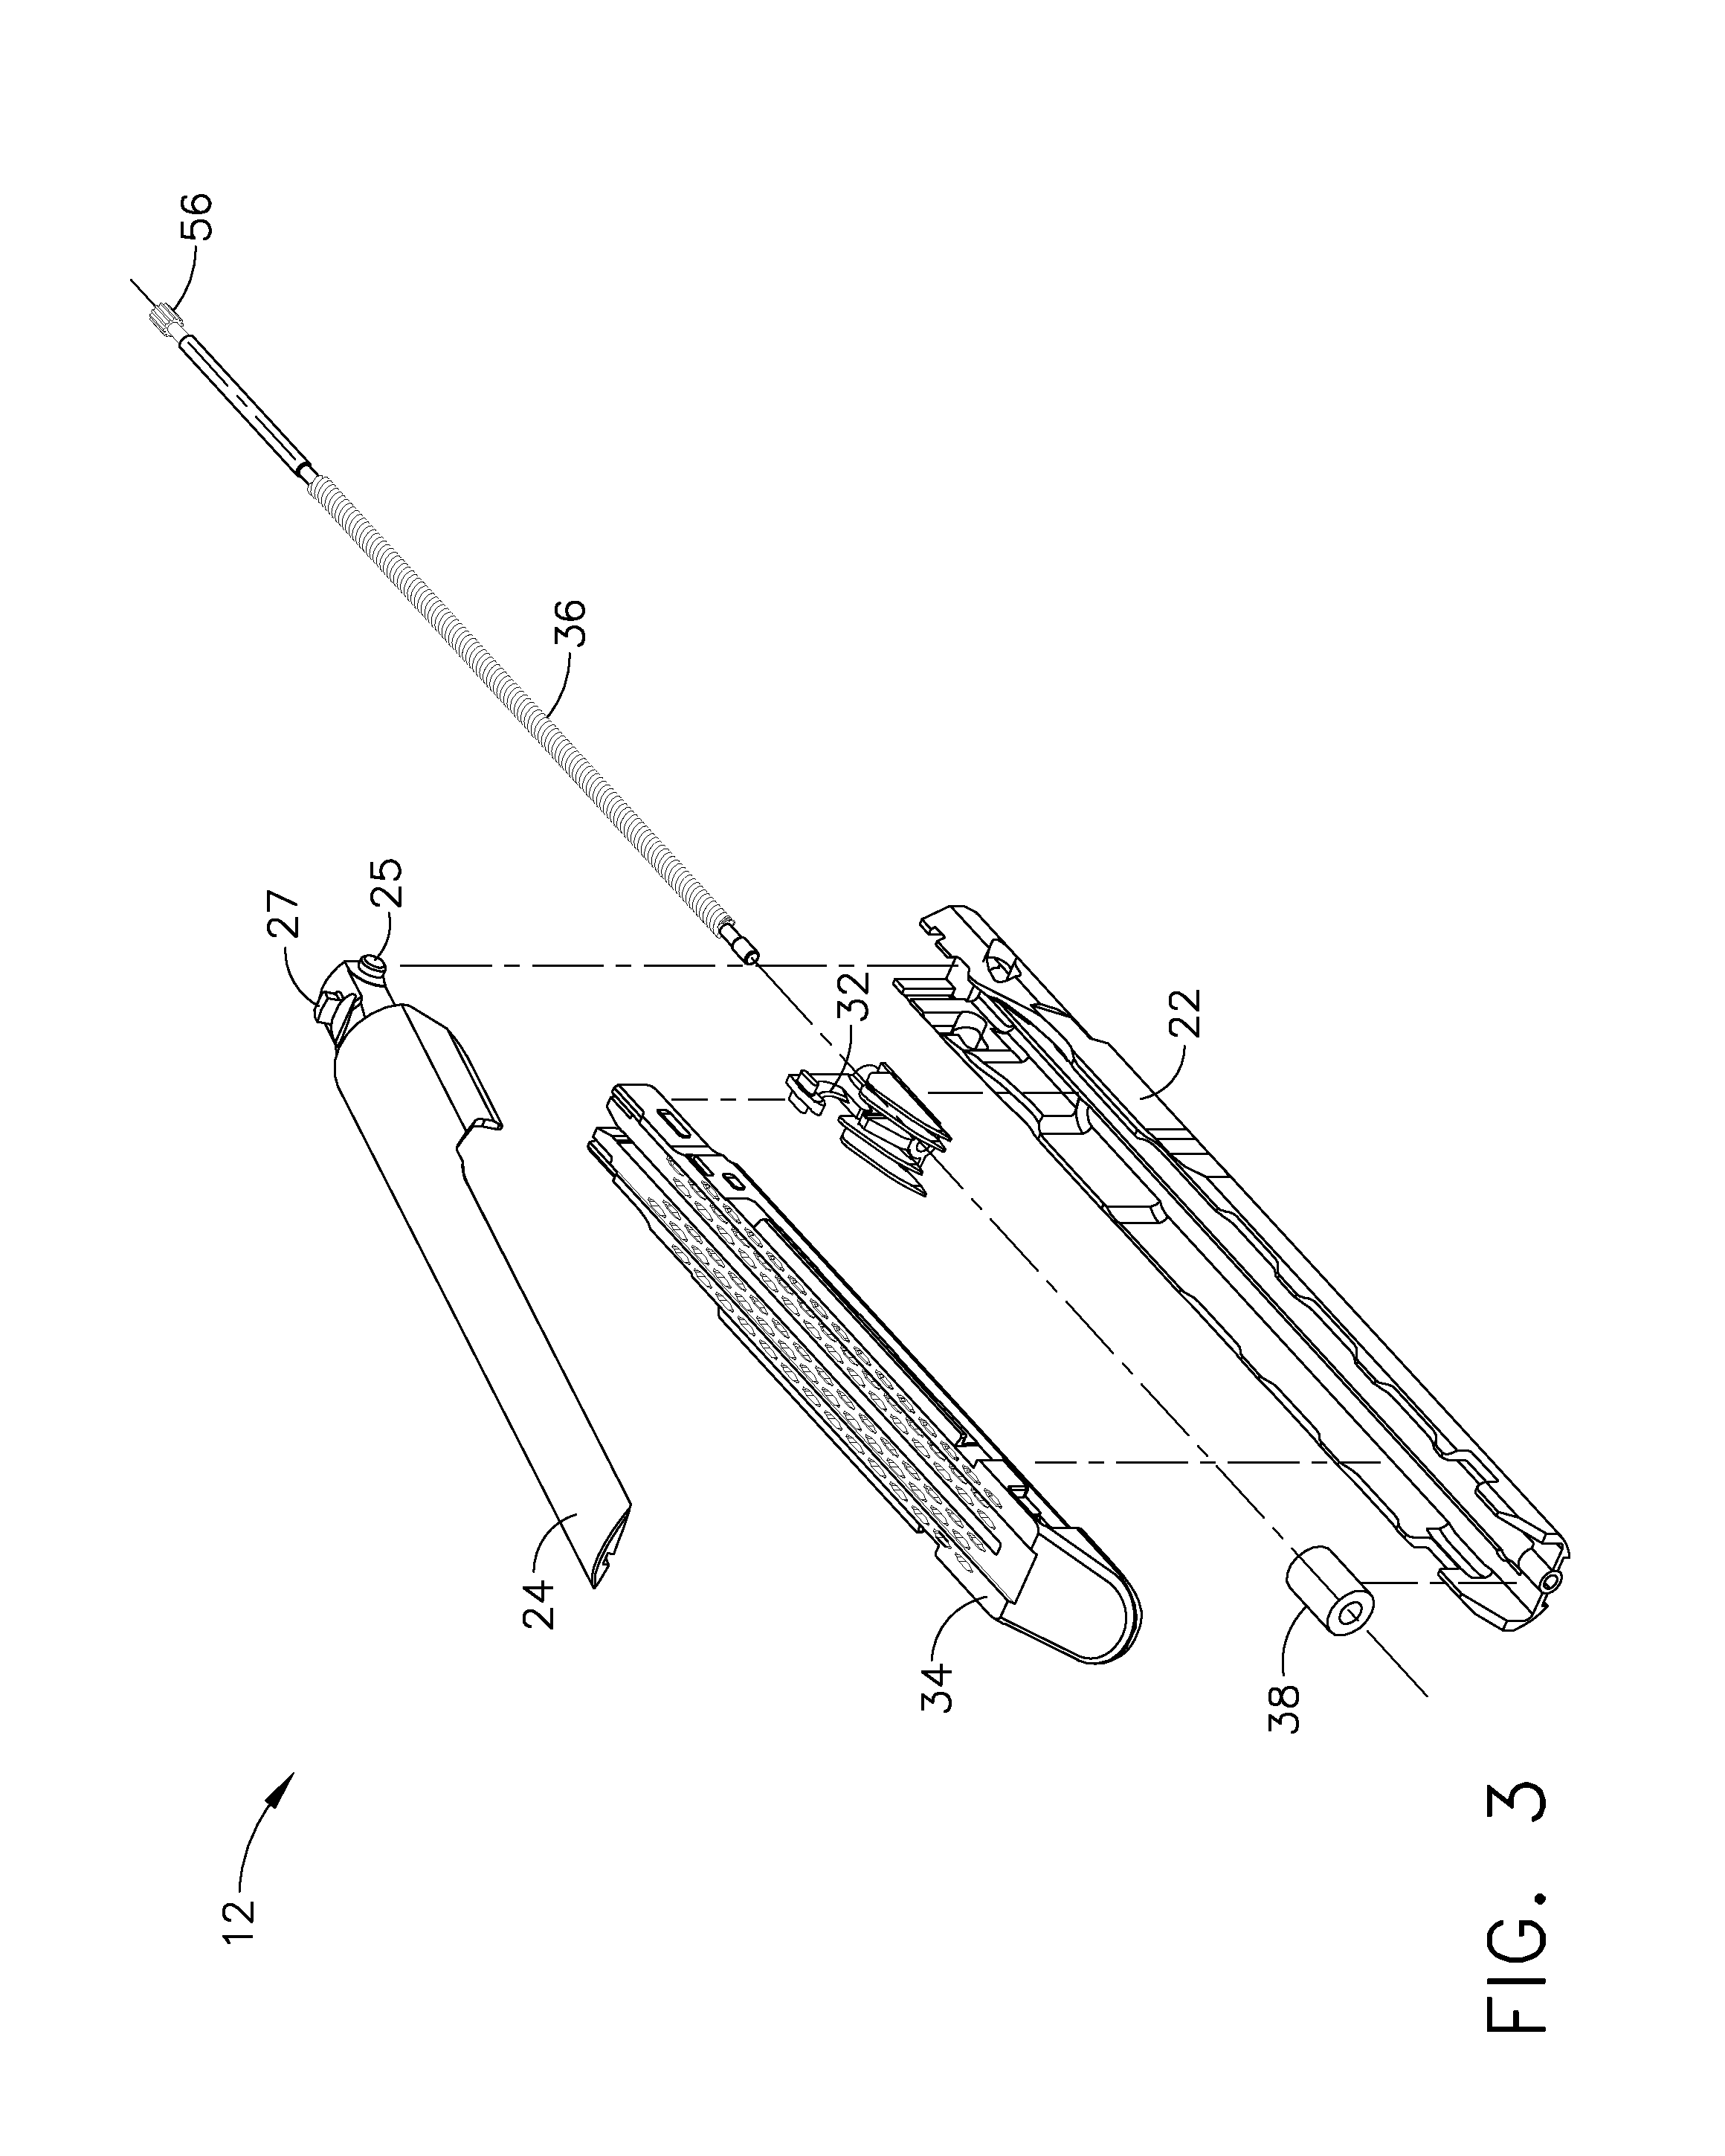 US8840603B2 - Surgical instrument with wireless